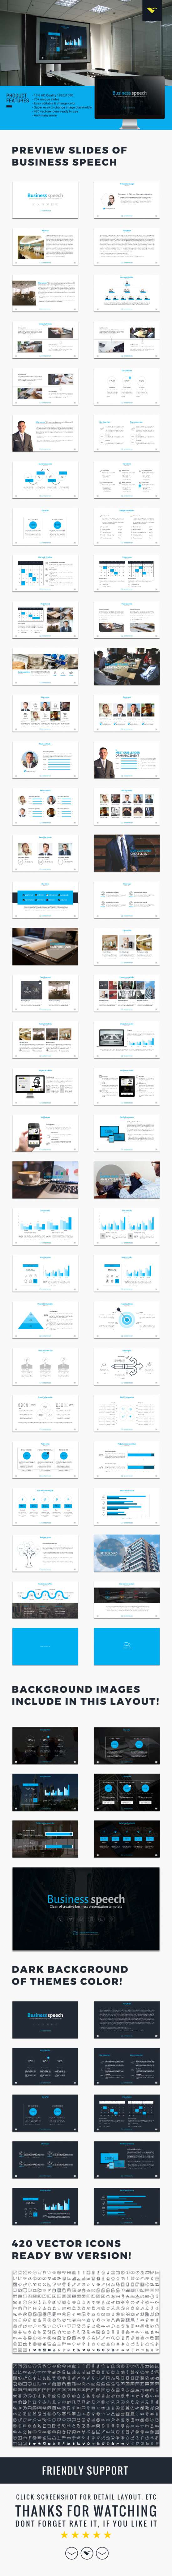 business speech google slide presentation template